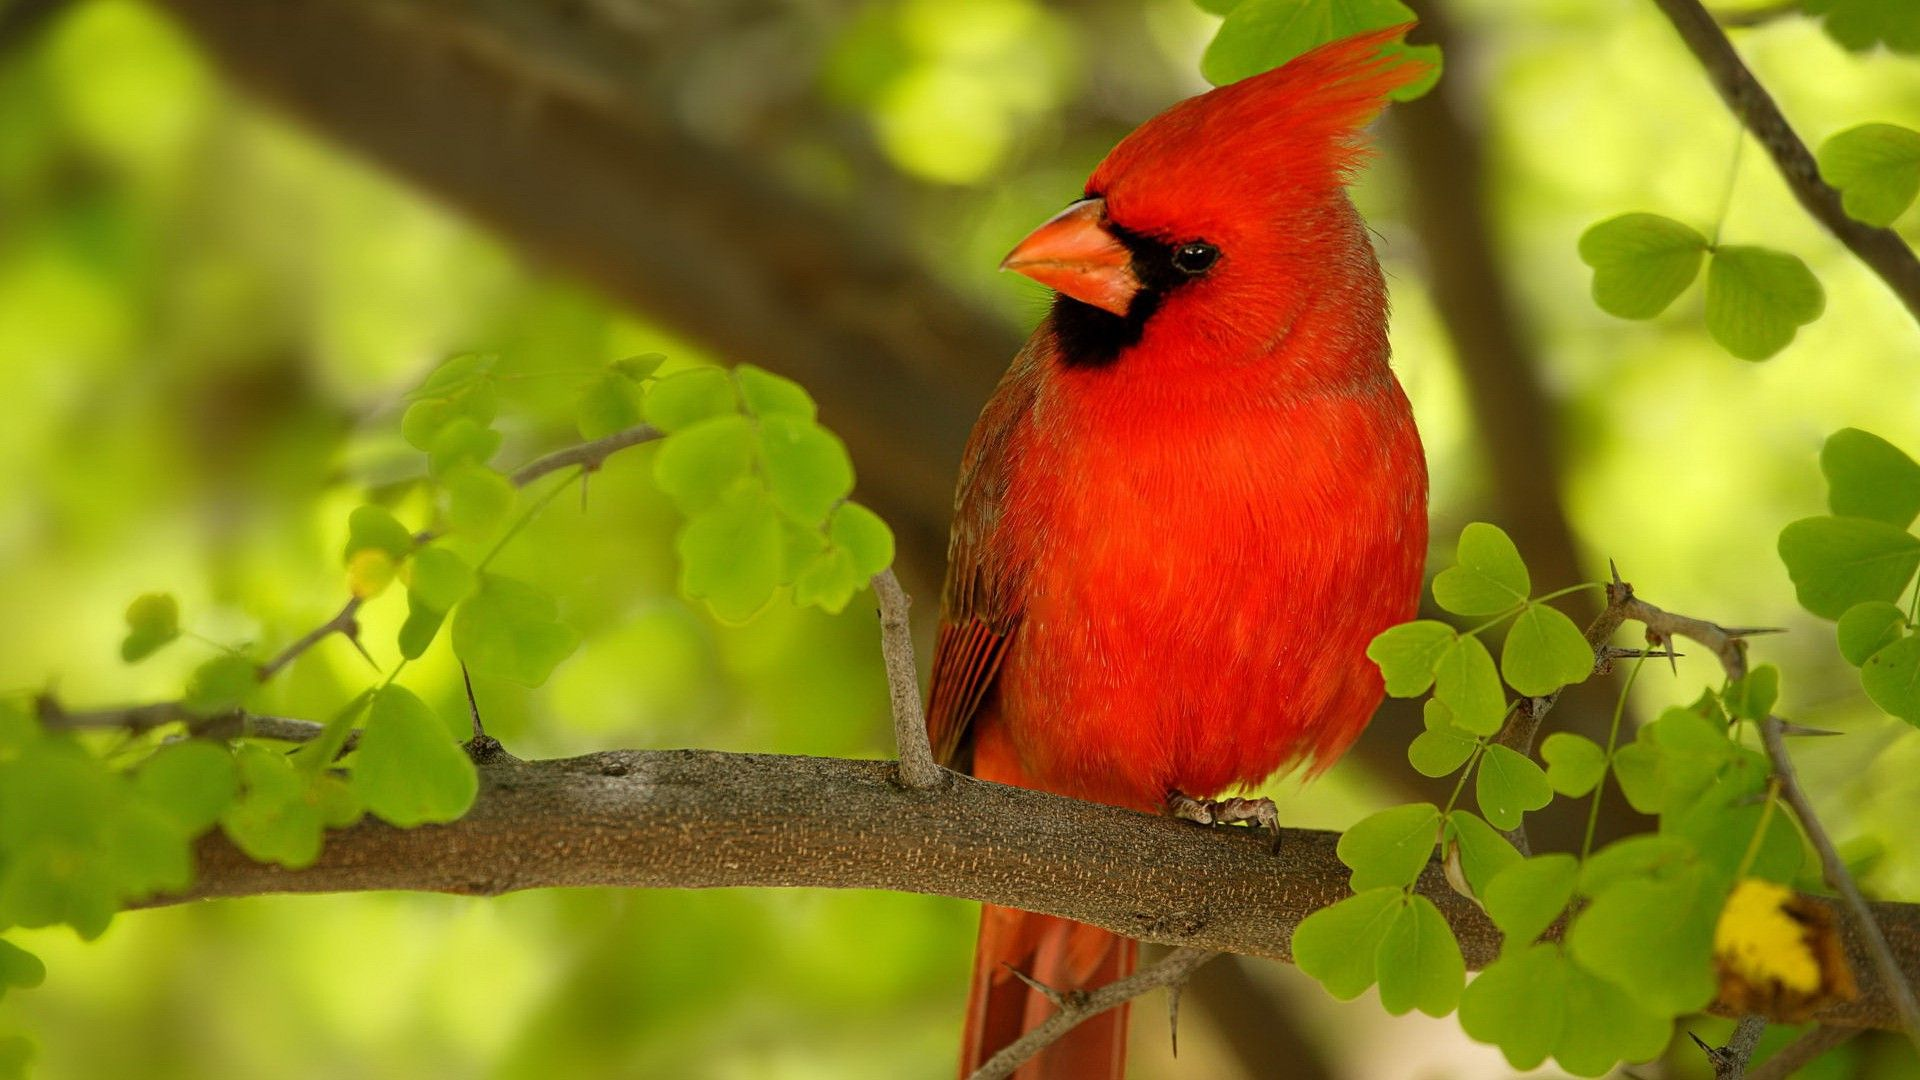 Red Bird HD 1080p Wallpapers Download Places to Visit Bird 1920x1080